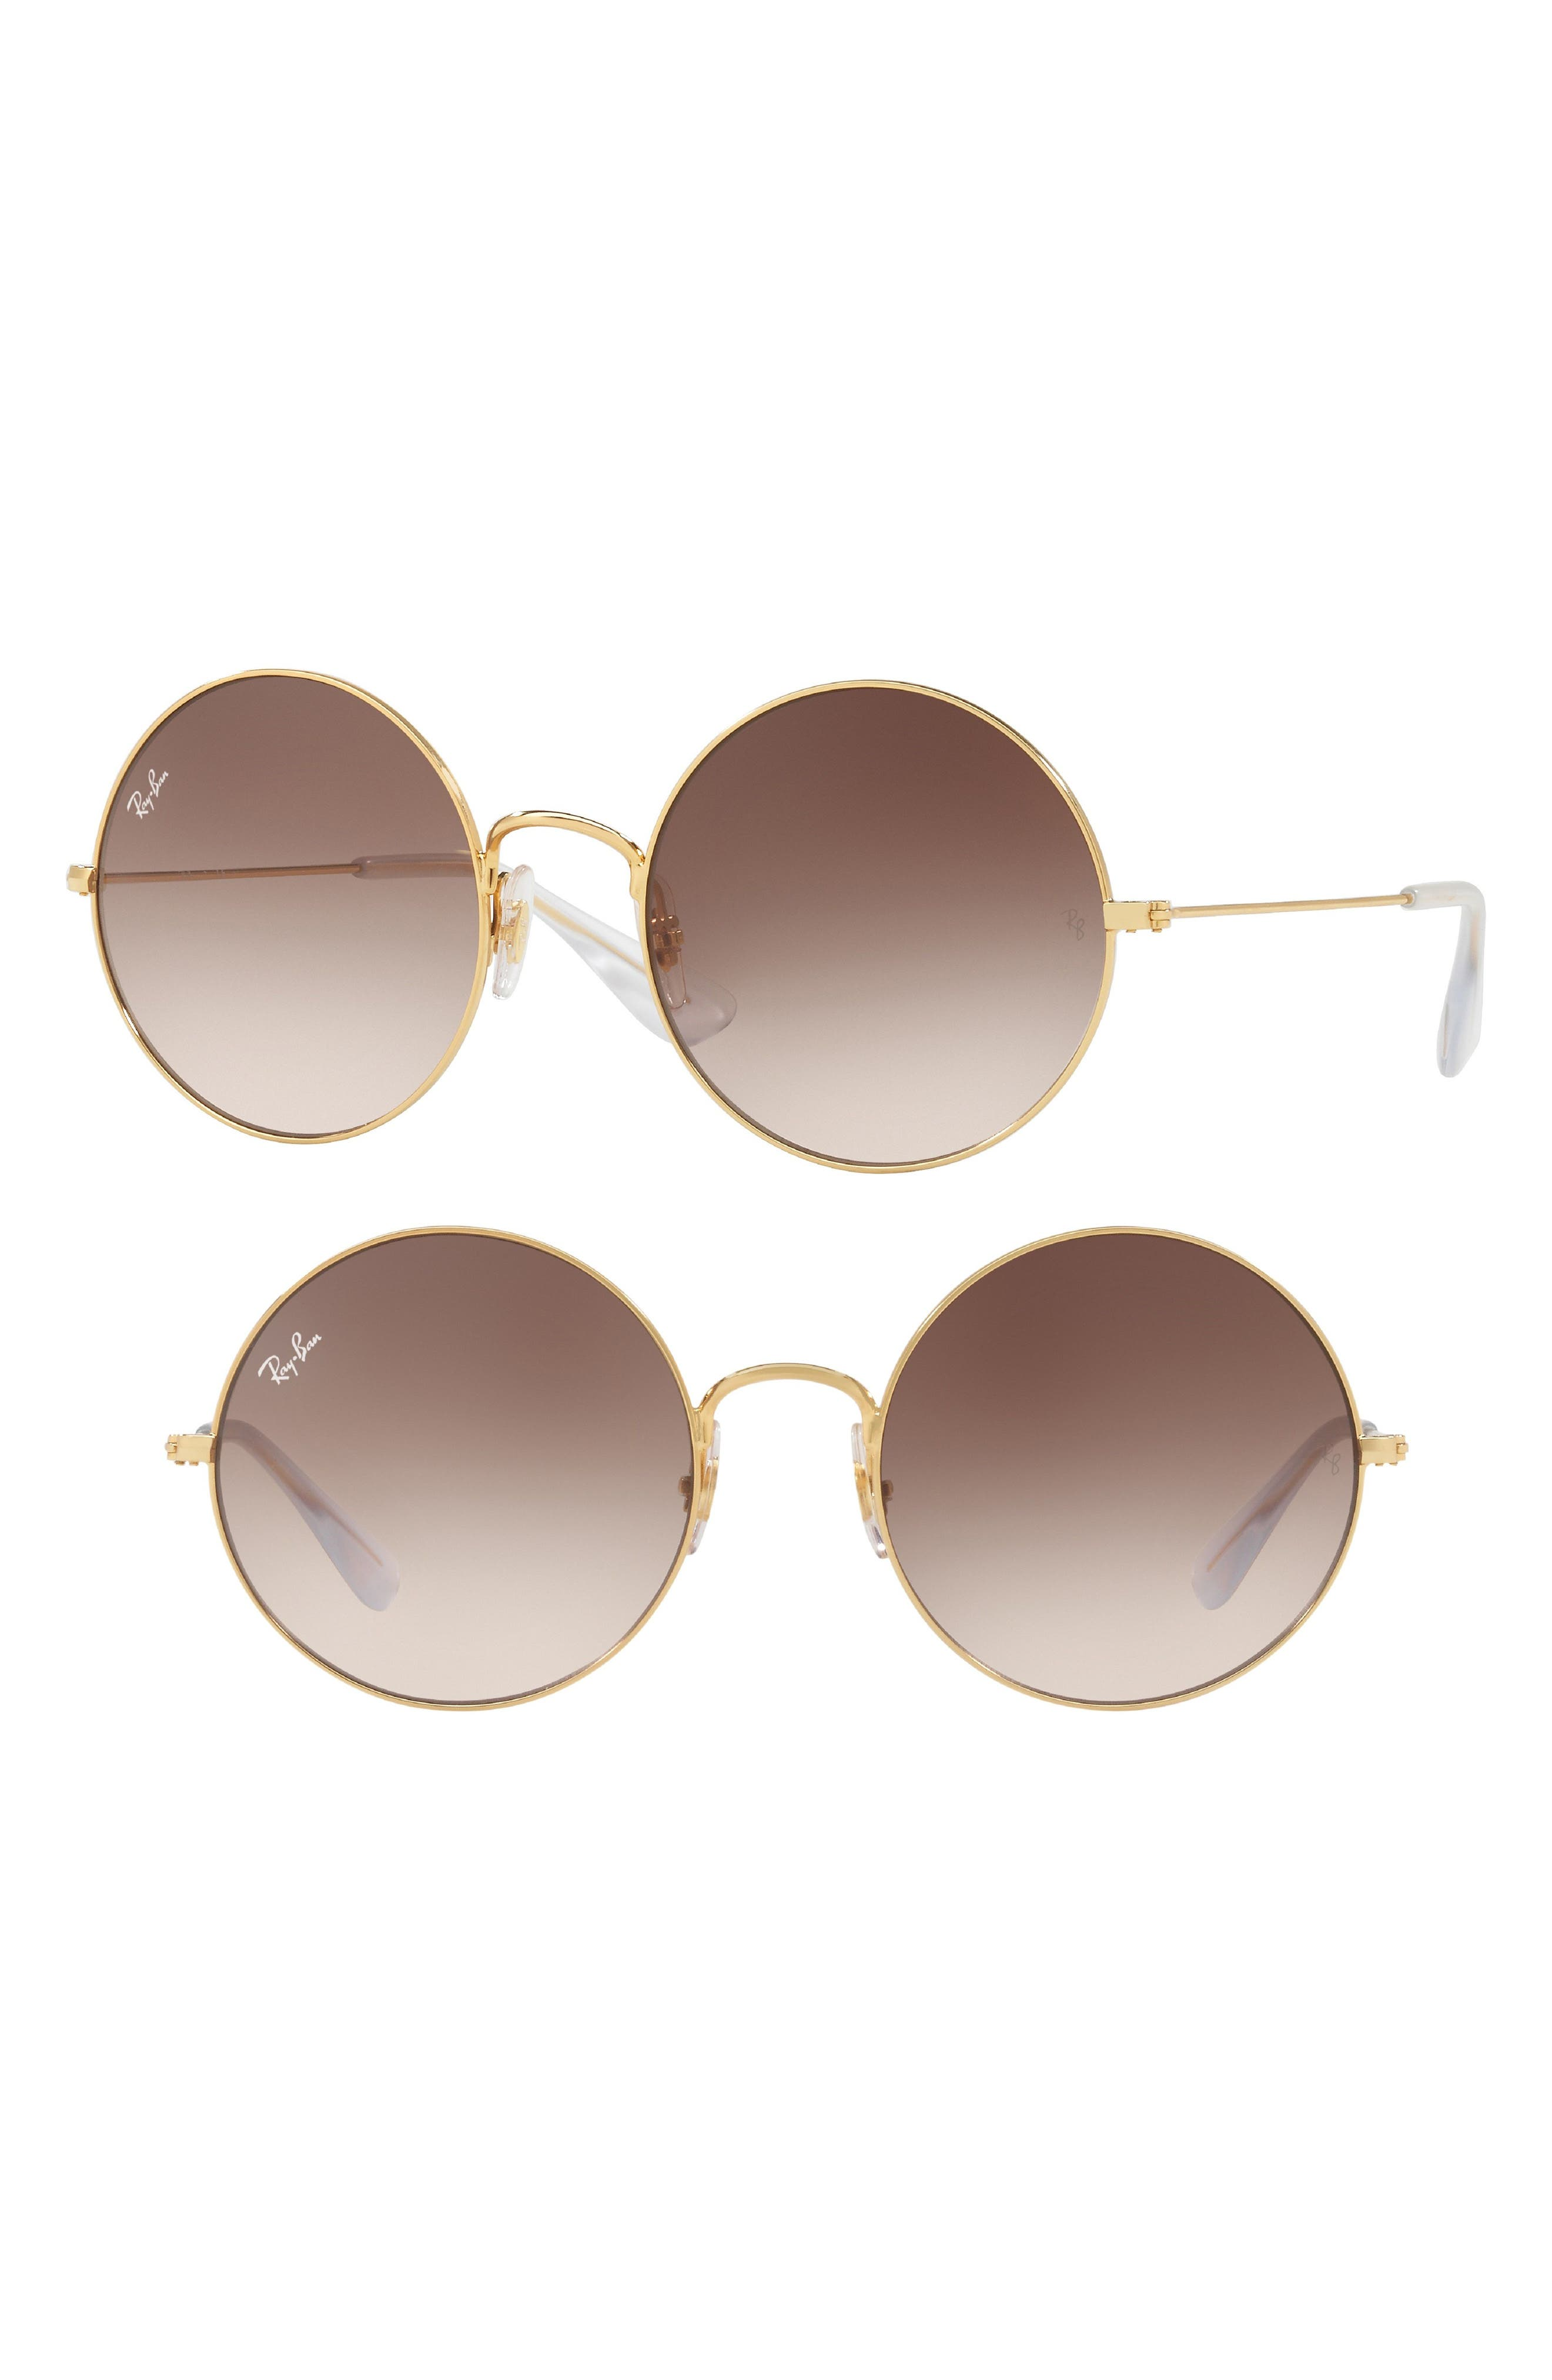 3592 55mm Gradient Round Sunglasses,                         Main,                         color, GOLD BROWN